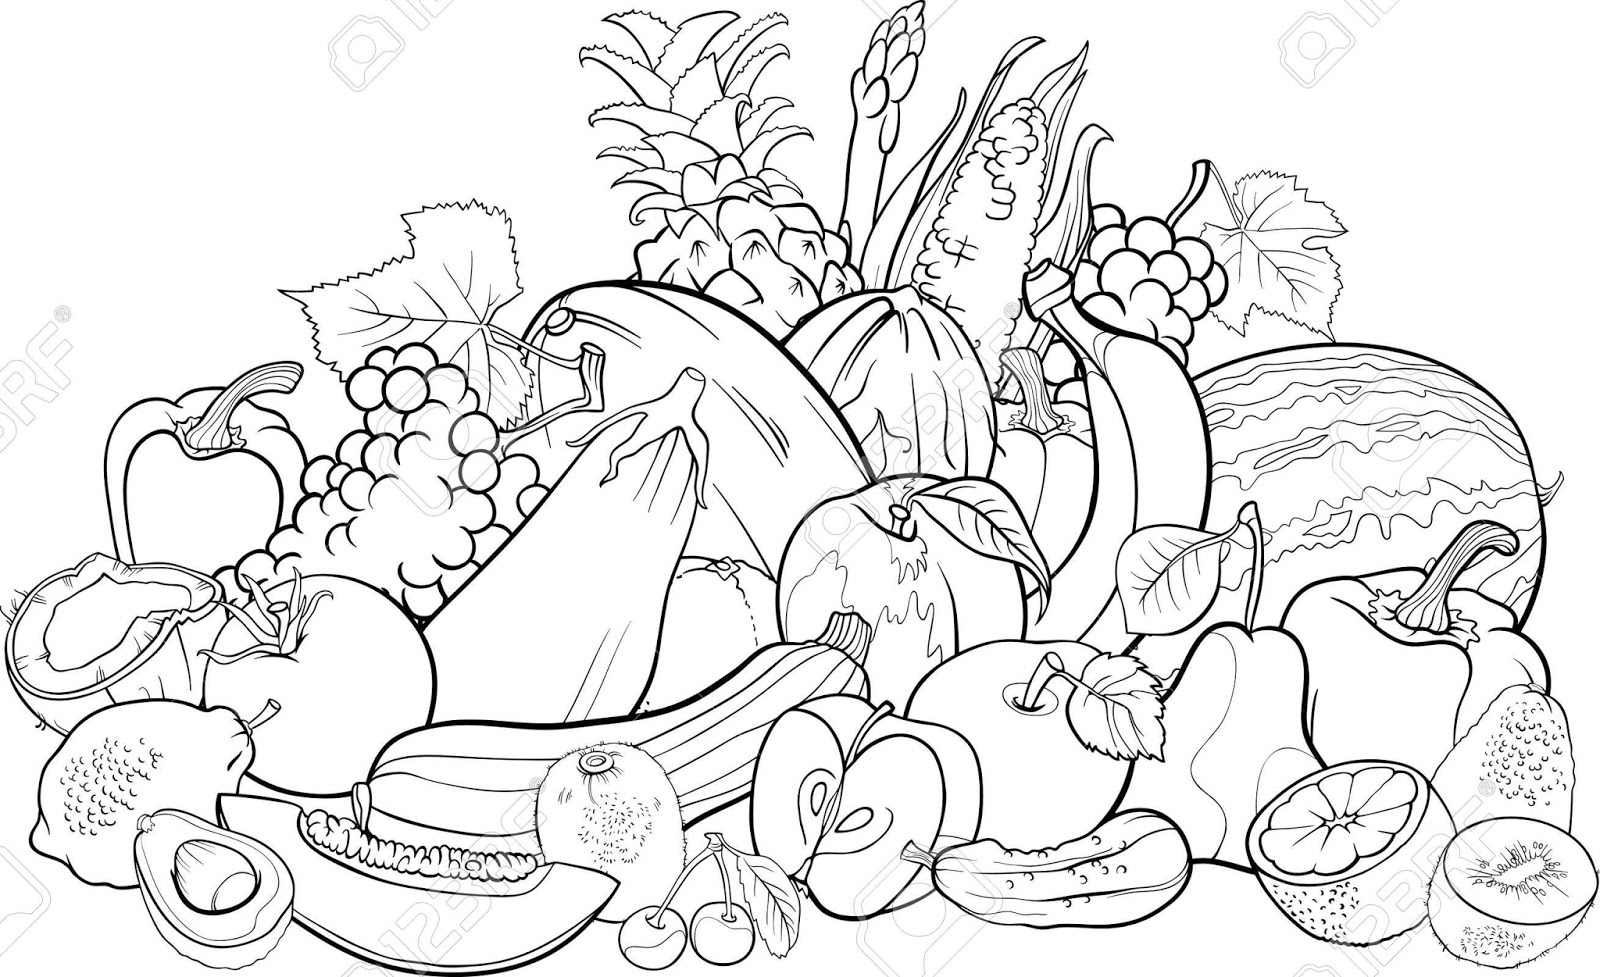 coloring vegetables and fruits free coloring pages of vegetable gardens vegetables coloring fruits and